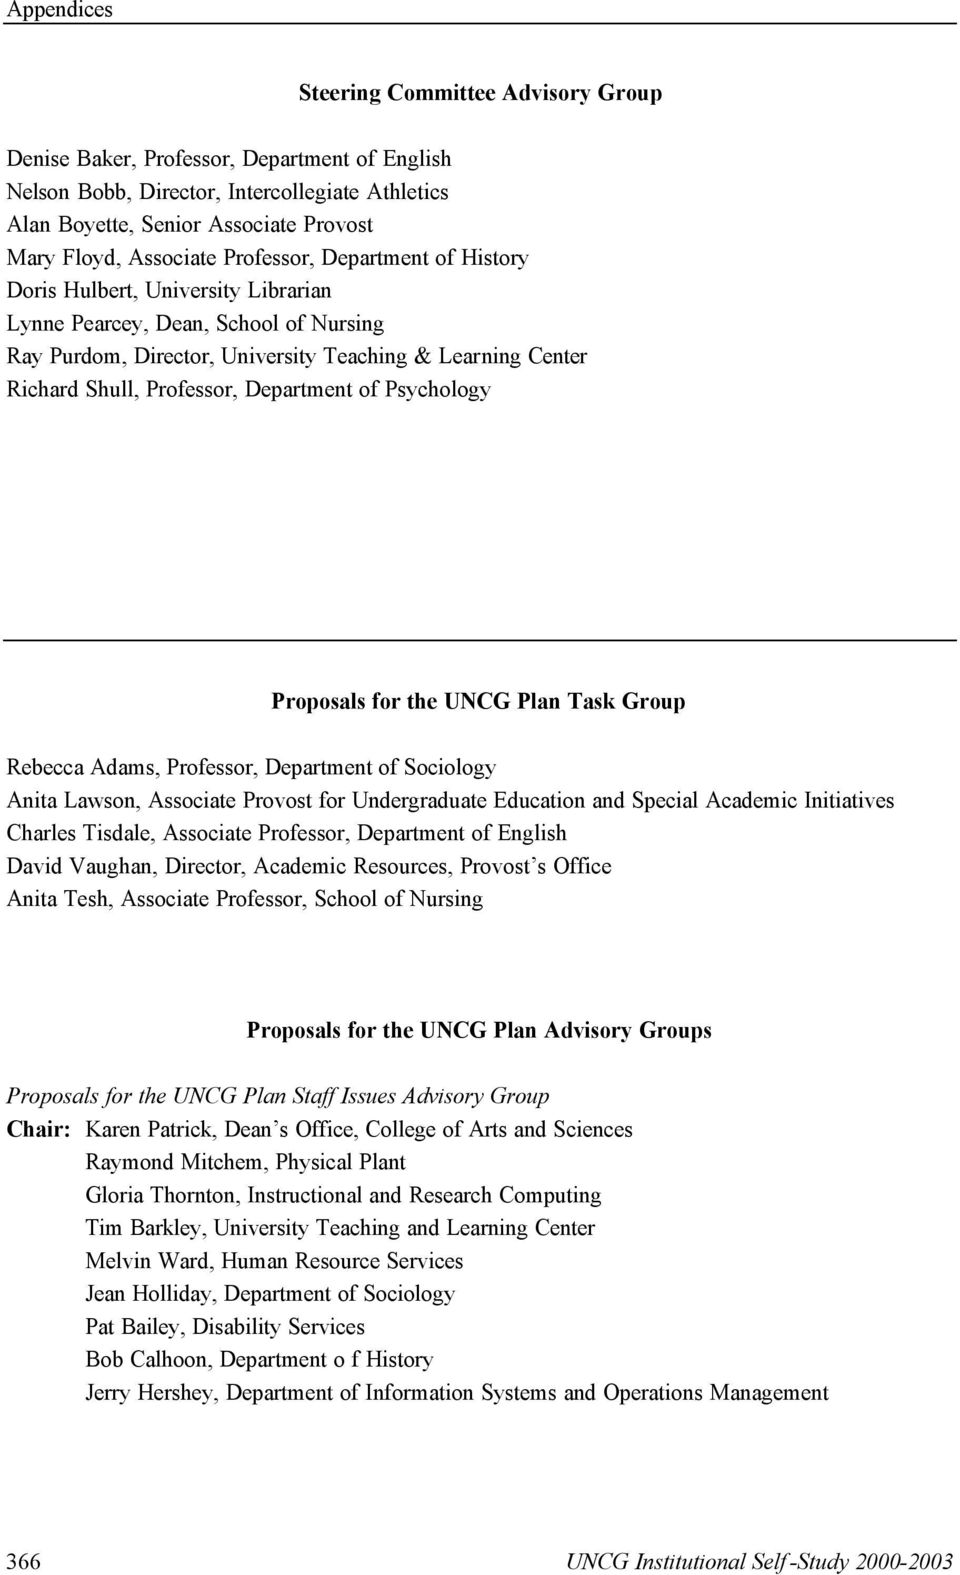 Department of Psychology Proposals for the UNCG Plan Task Group Rebecca Adams, Professor, Department of Sociology Anita Lawson, Associate Provost for Undergraduate Education and Special Academic